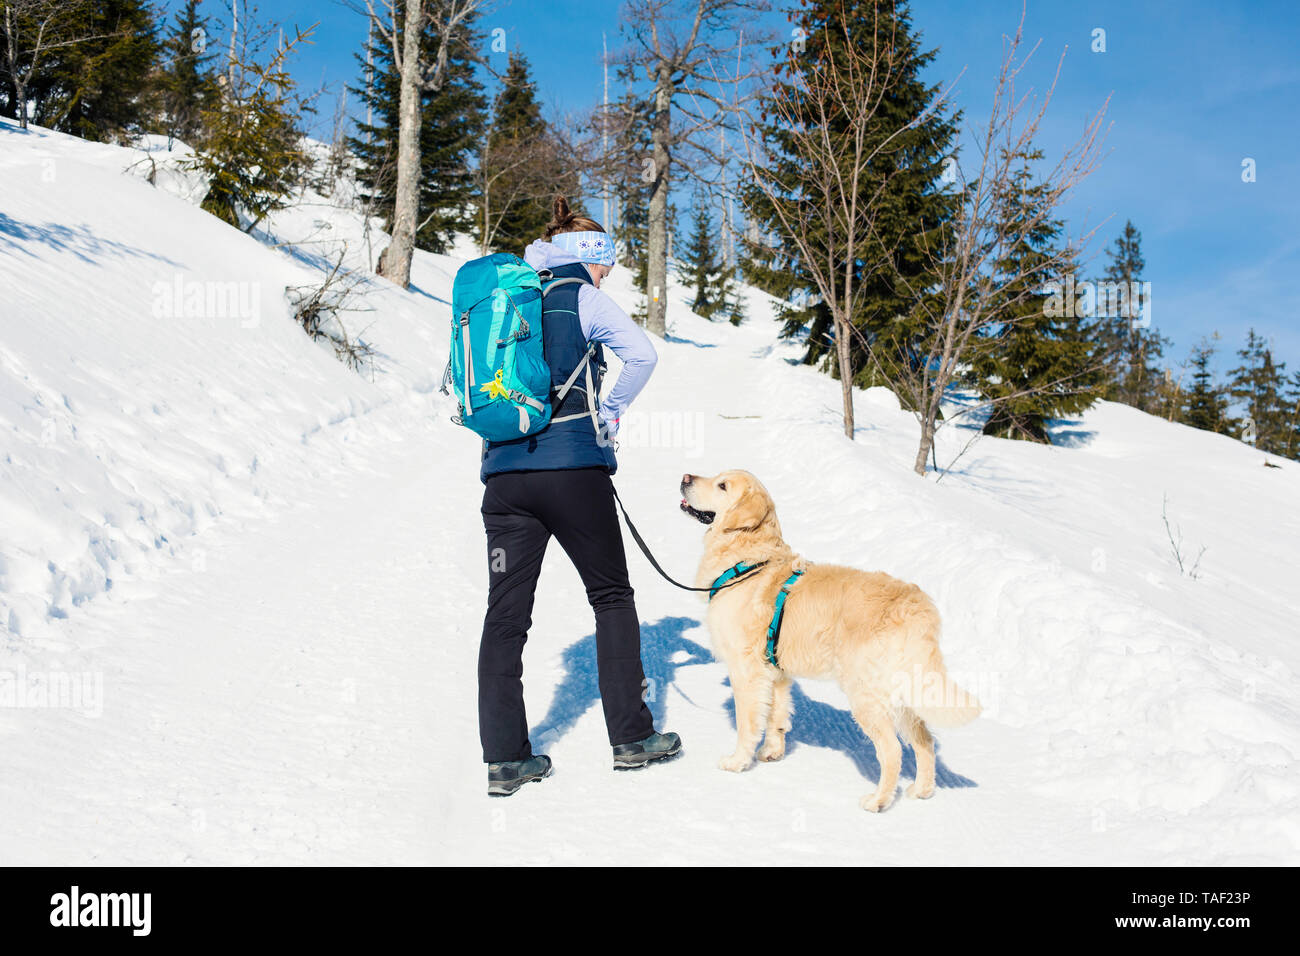 Germany, Bavarian Forest, Lusen, woman with dog hiking in winter - Stock Image